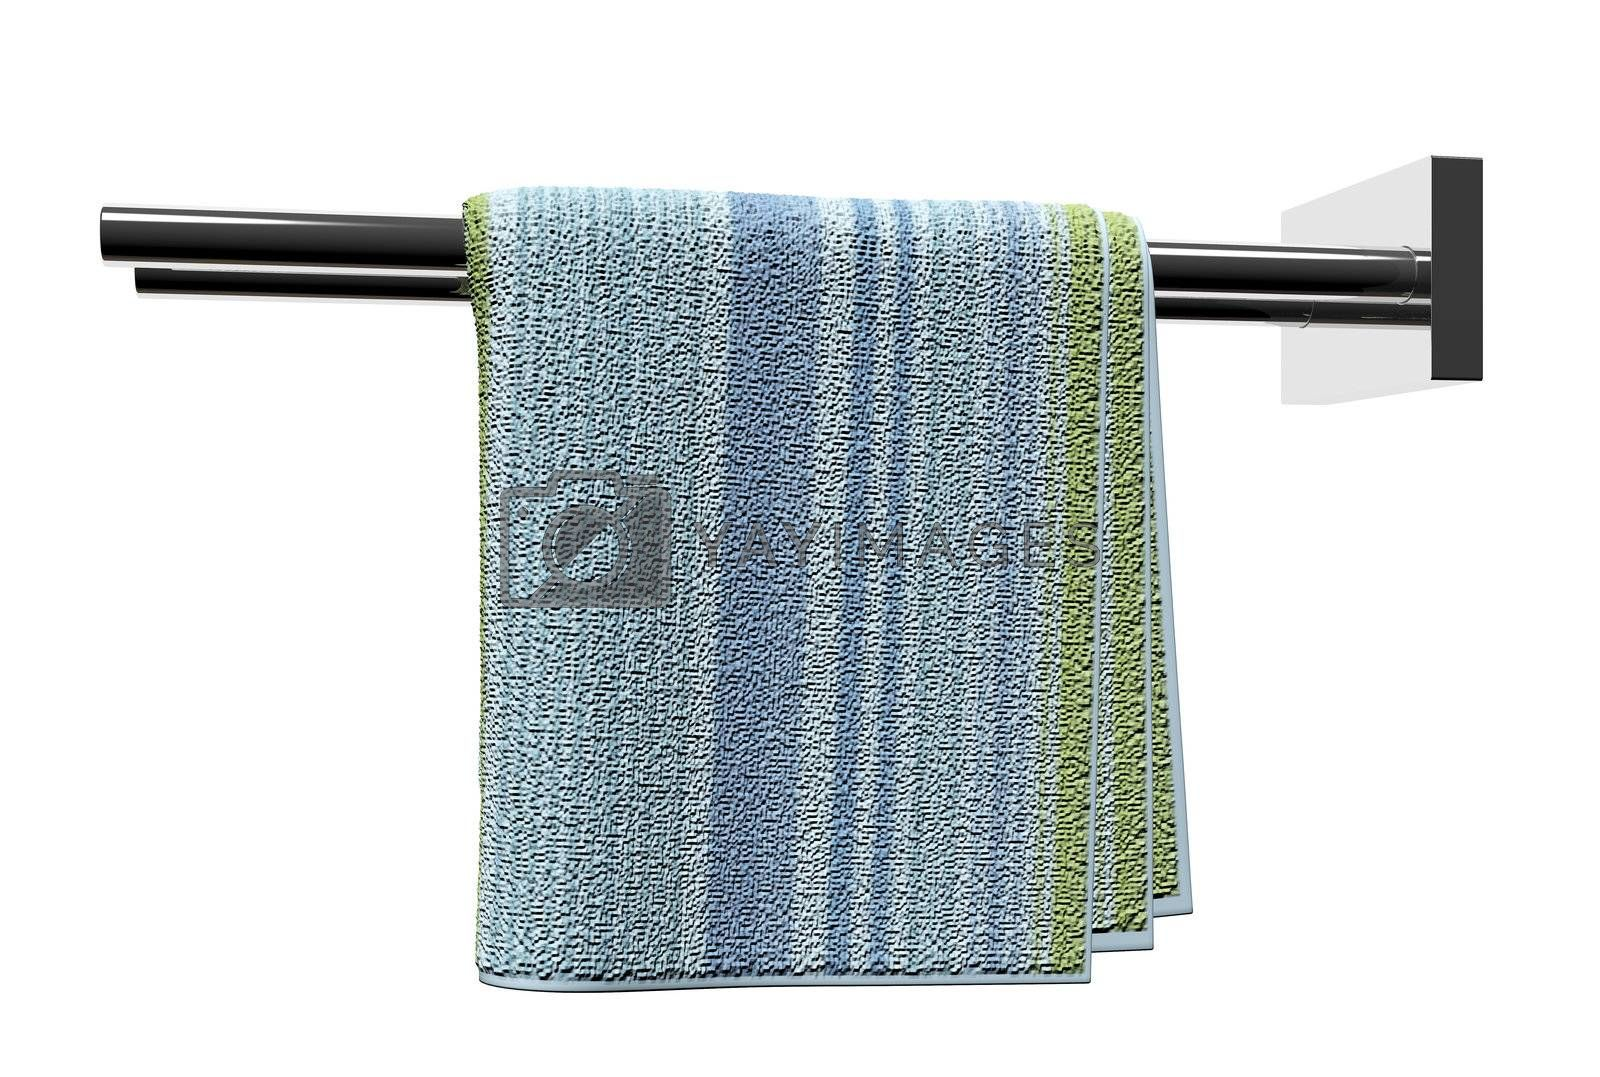 Chrome towel holder rods, with a cotton bathroom towel, isolated against a white background